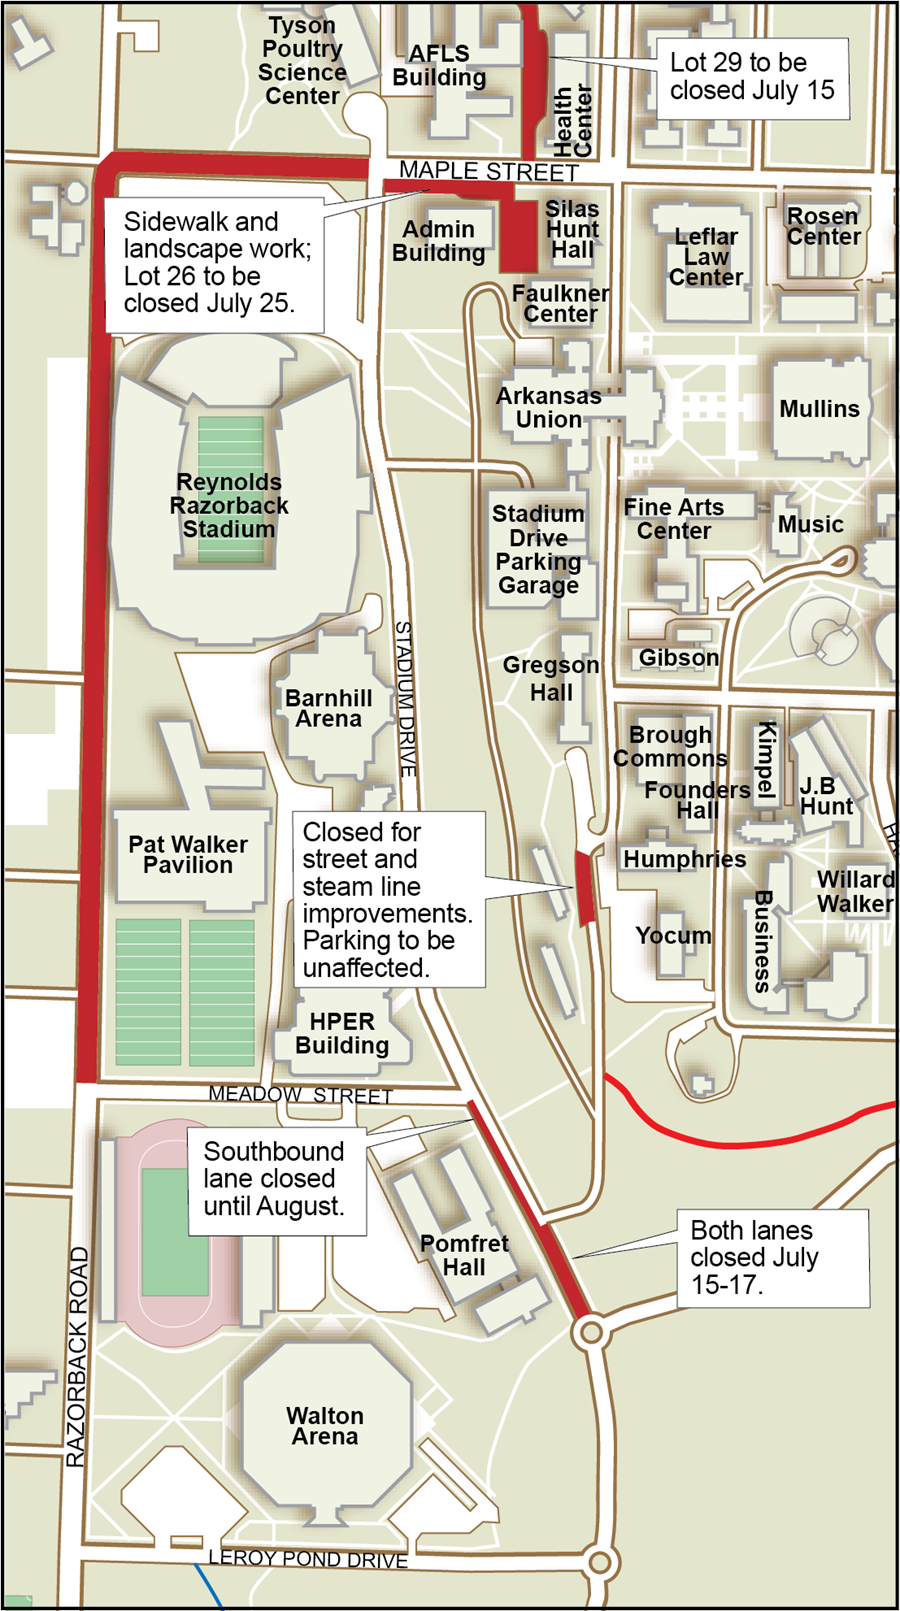 u of arkansas map Additional Construction To Affect Traffic On Campus Starting July